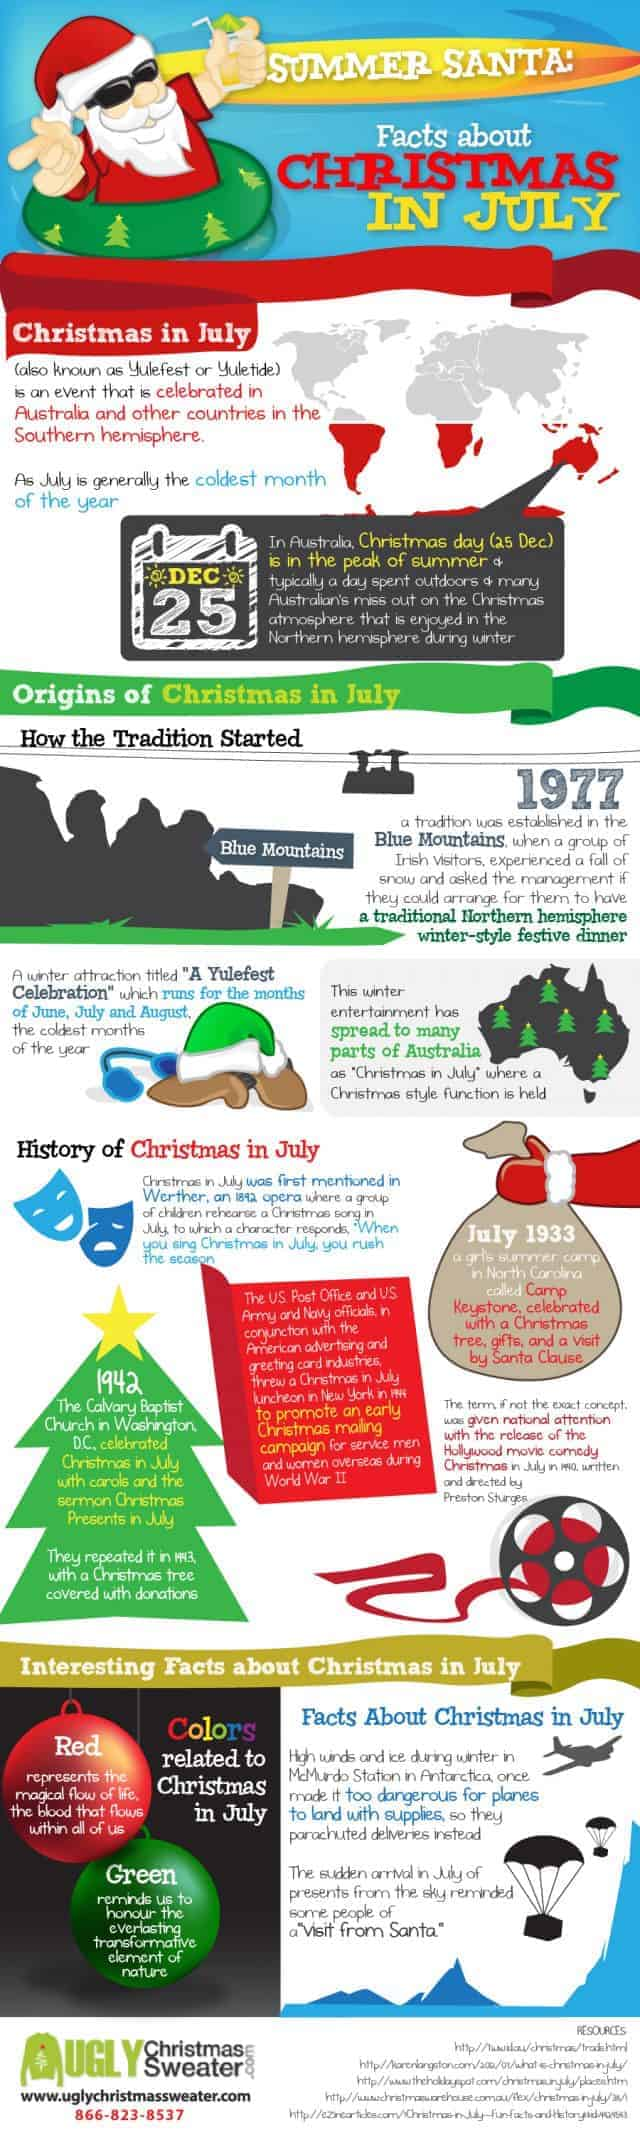 christmas-in-july-infographic